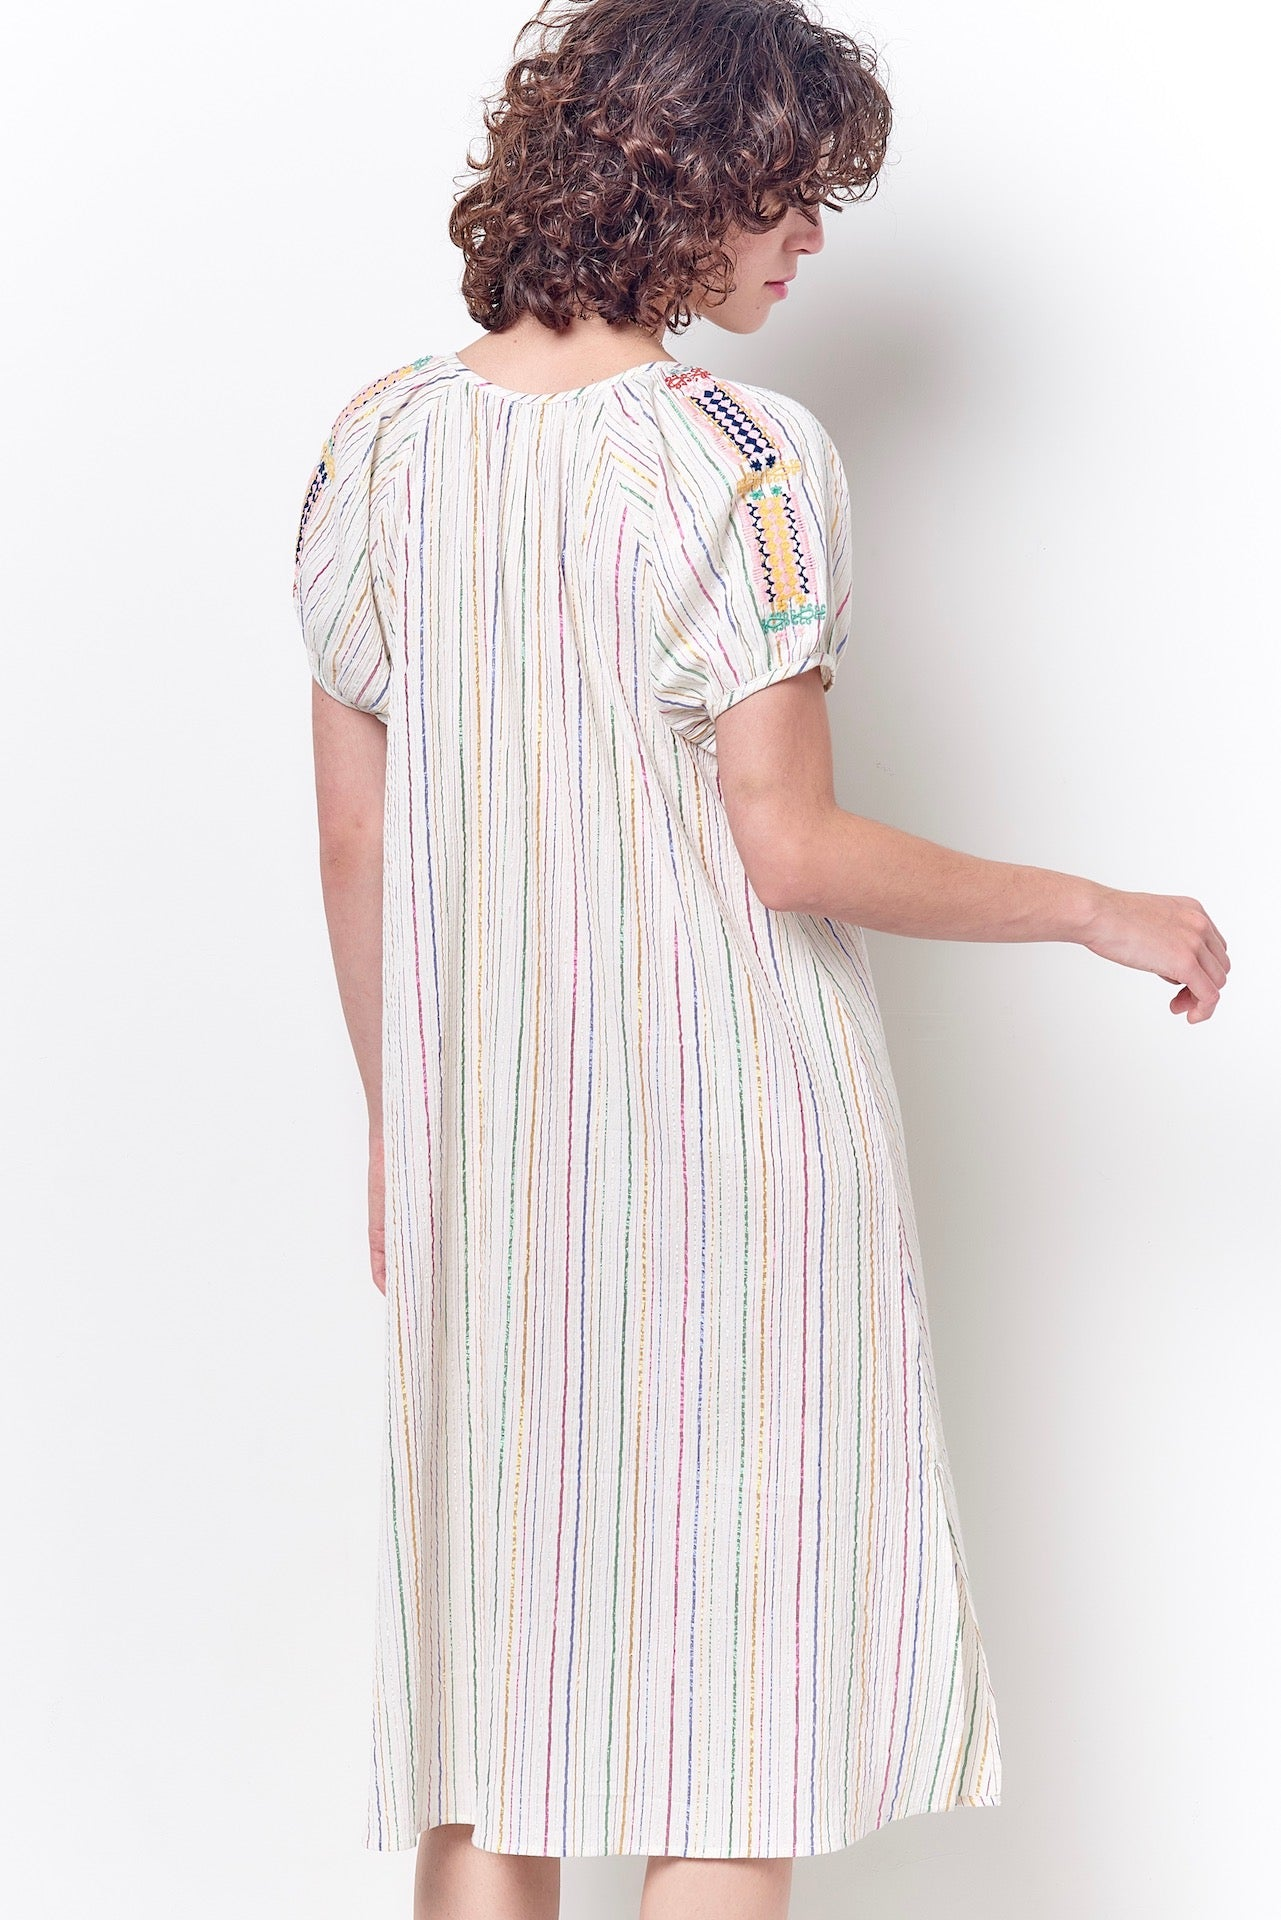 JESSICA Peasant Dress with Embroidery -Stripe